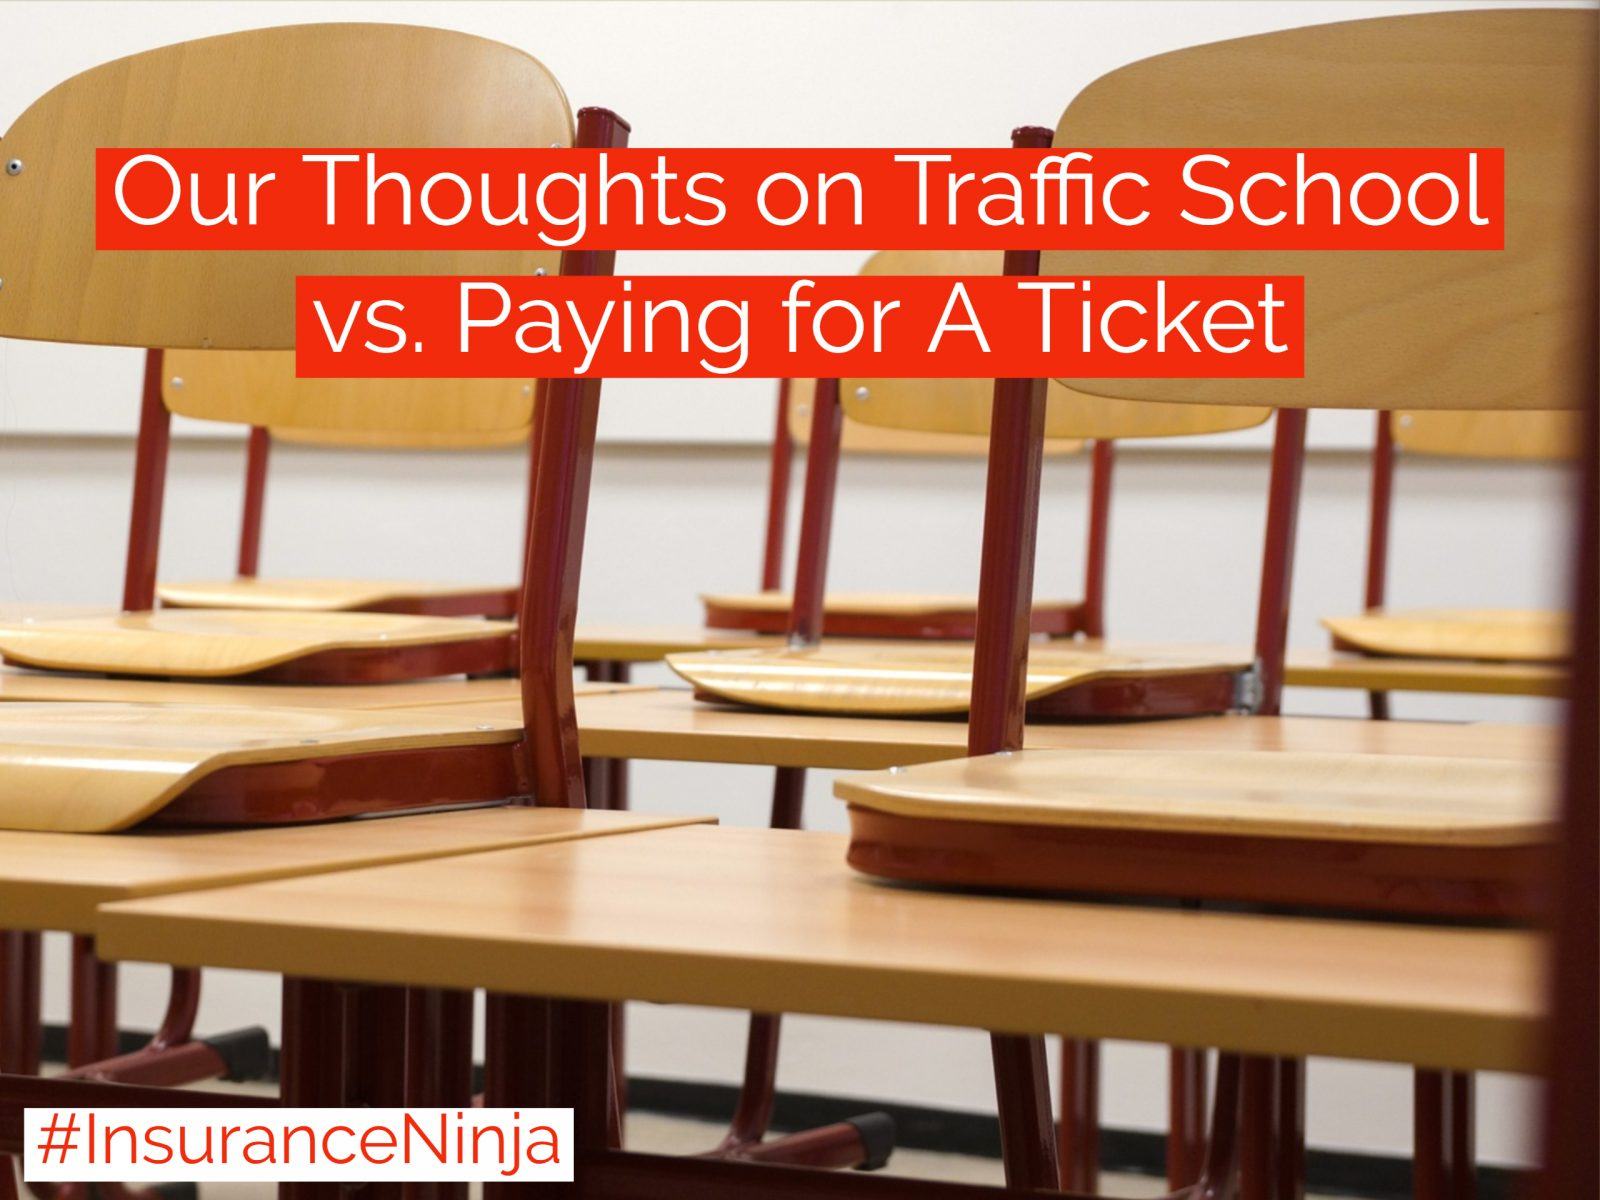 Our Thoughts on Traffic School vs. Paying for A Ticket